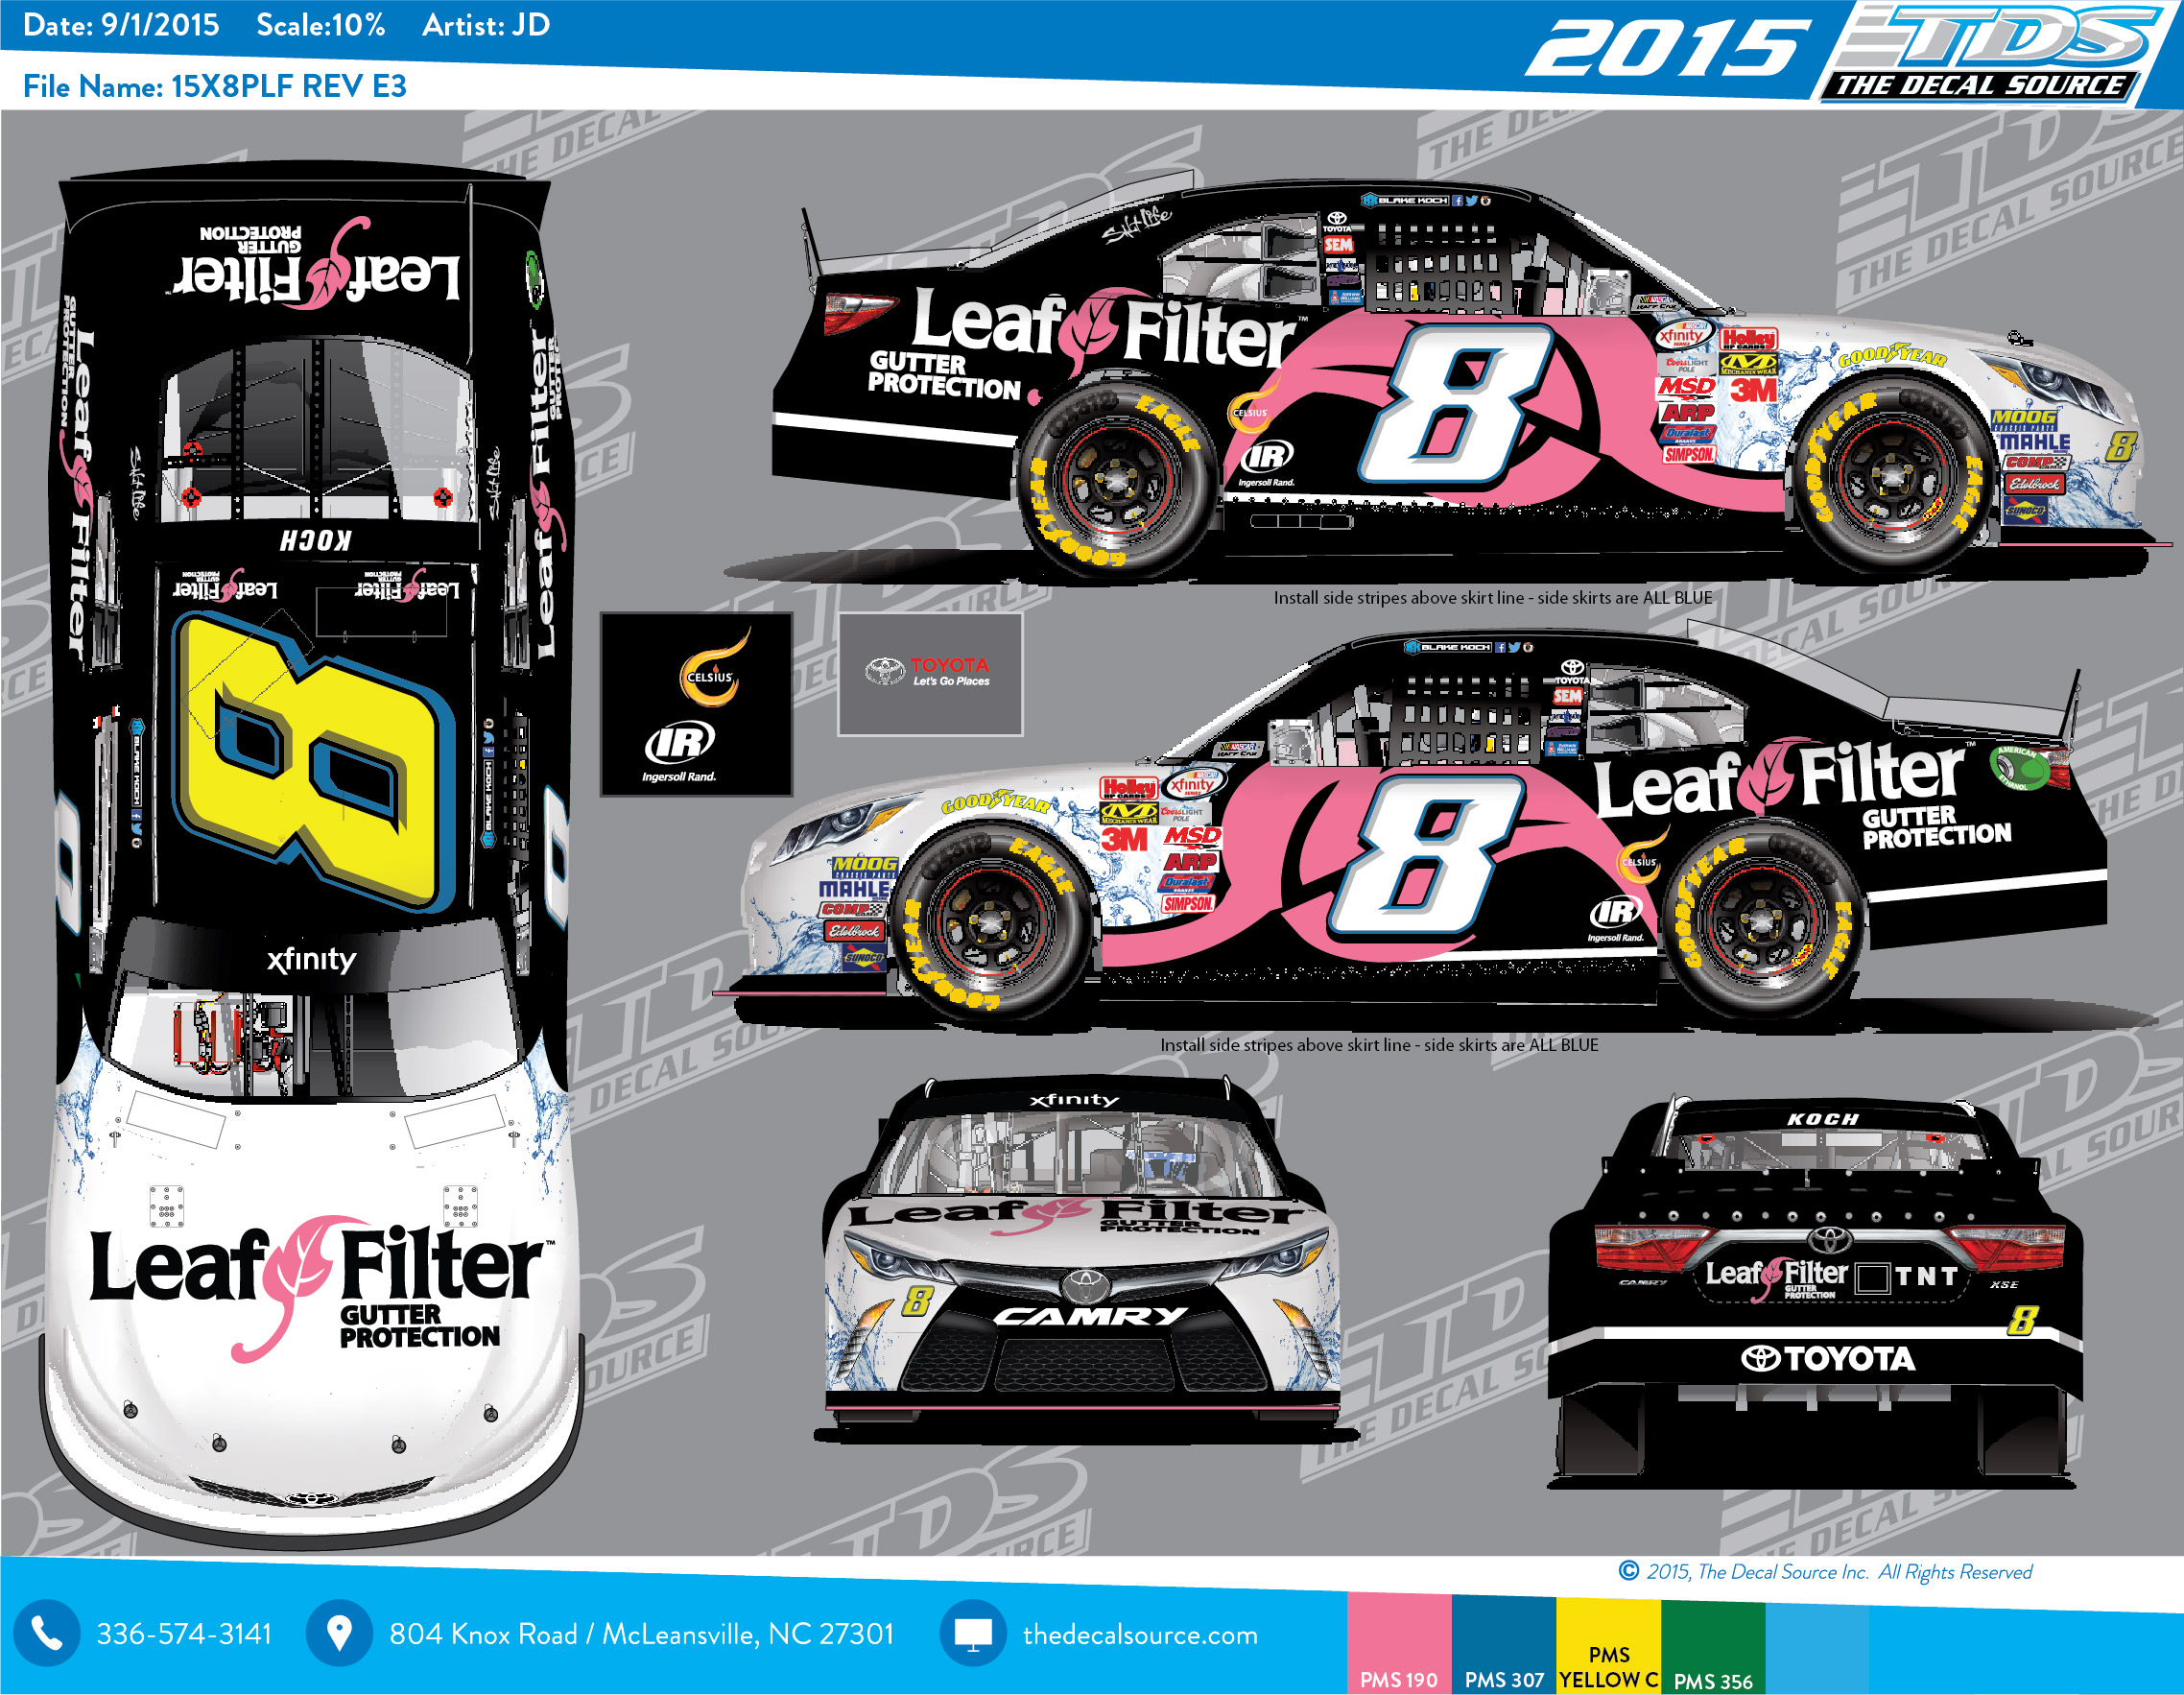 Leaffilter supports breast cancer awareness month at the for Koch xfinity driver